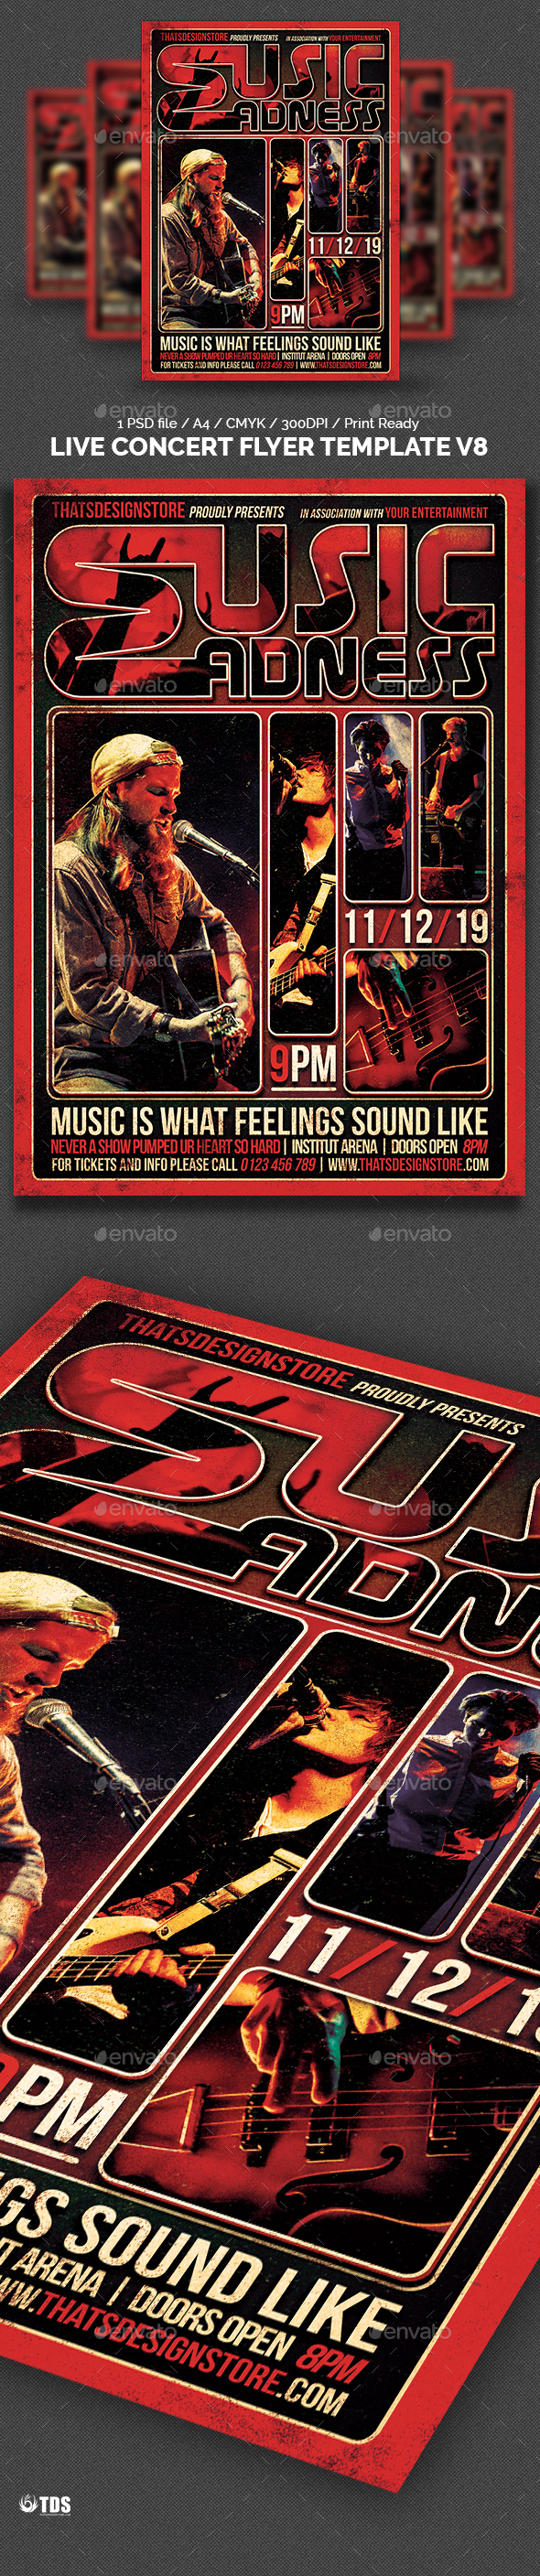 Live Concert Flyer Template V8 - Concerts Events